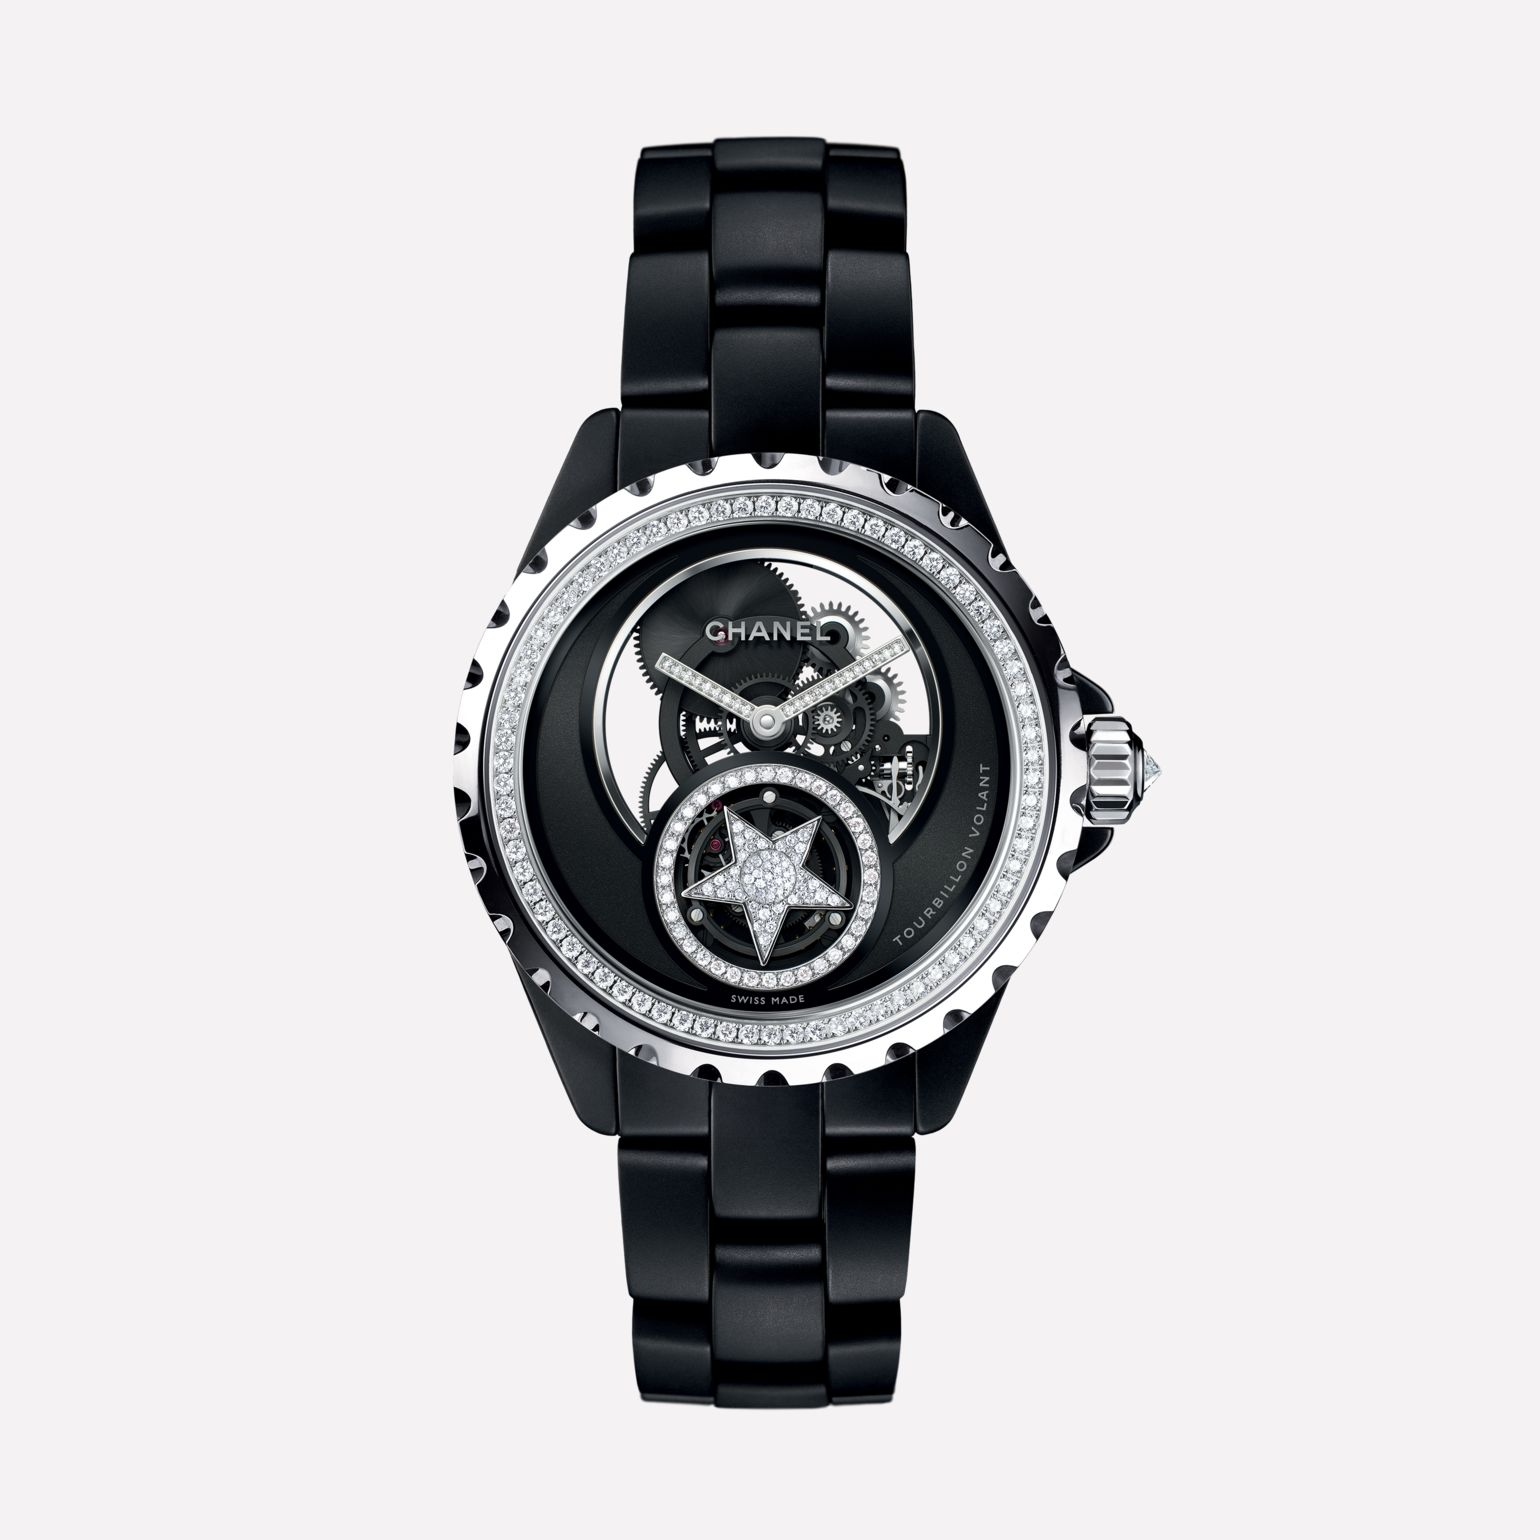 J12 Skeleton Flying Tourbillon Watch White gold and matte black highly-resistant ceramic, bezel and crown set with diamonds, openwork dial